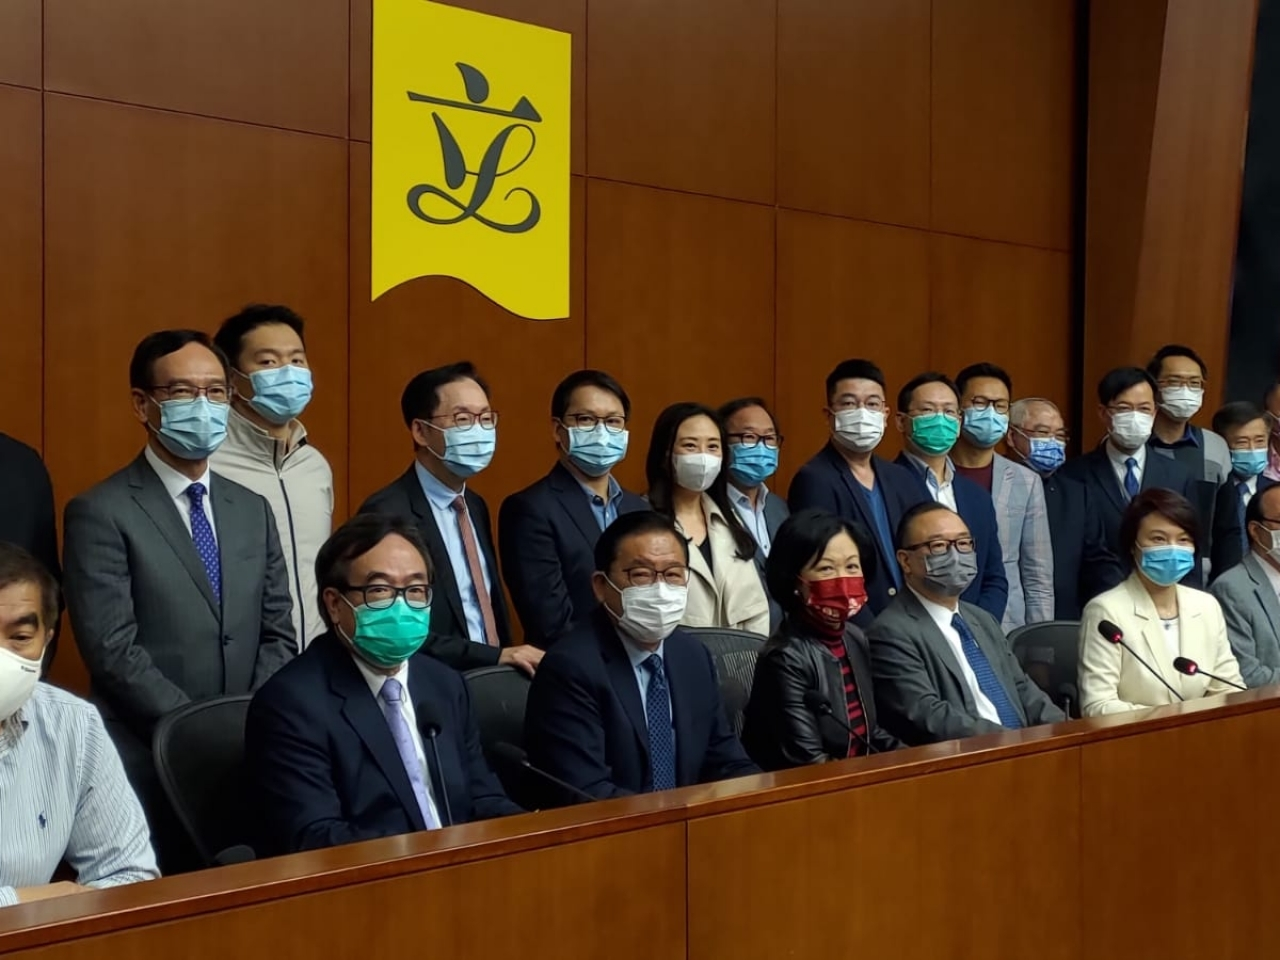 Legco observing for 'without reference to Beijing decides'